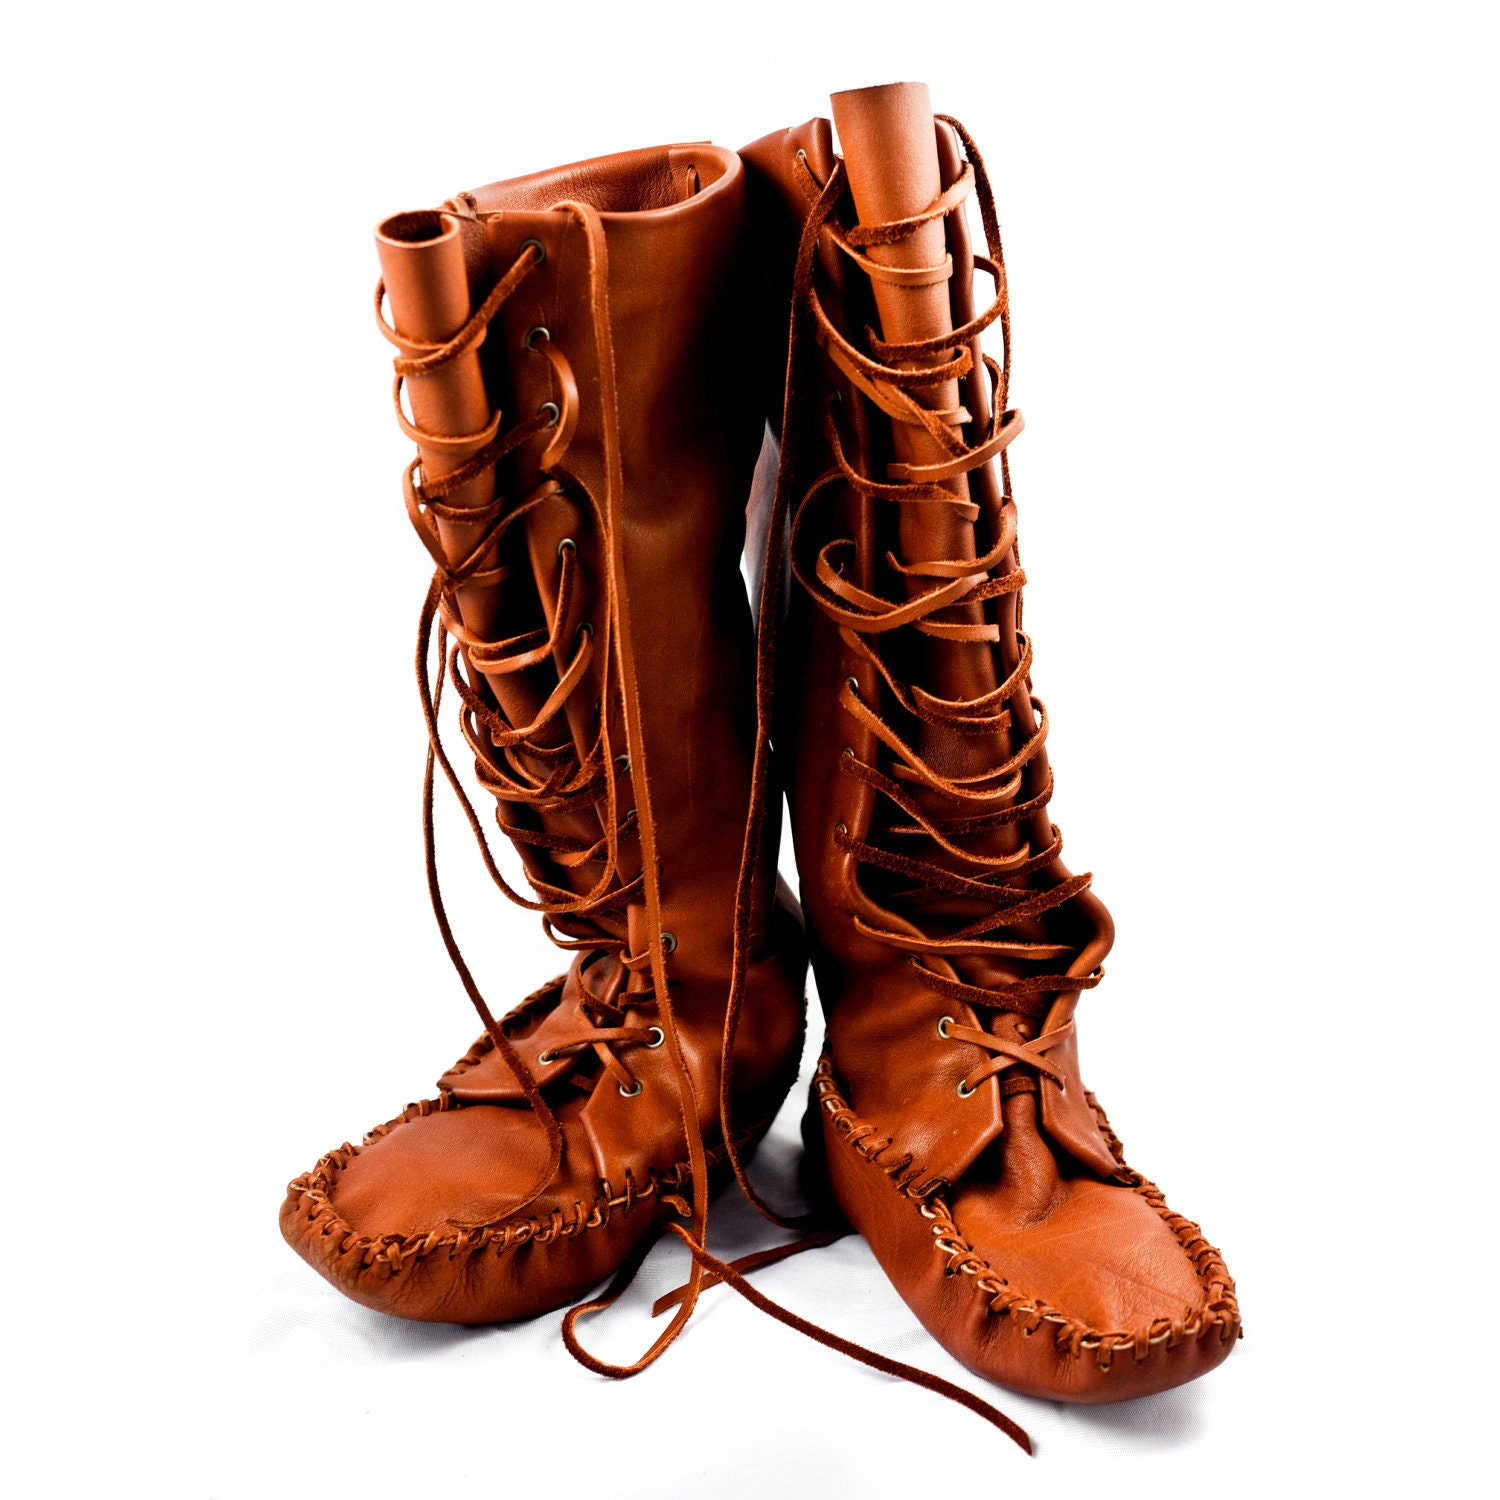 Since , Minnetonka Moccasin has been a staple of American style. Moccasins and more for men and women.